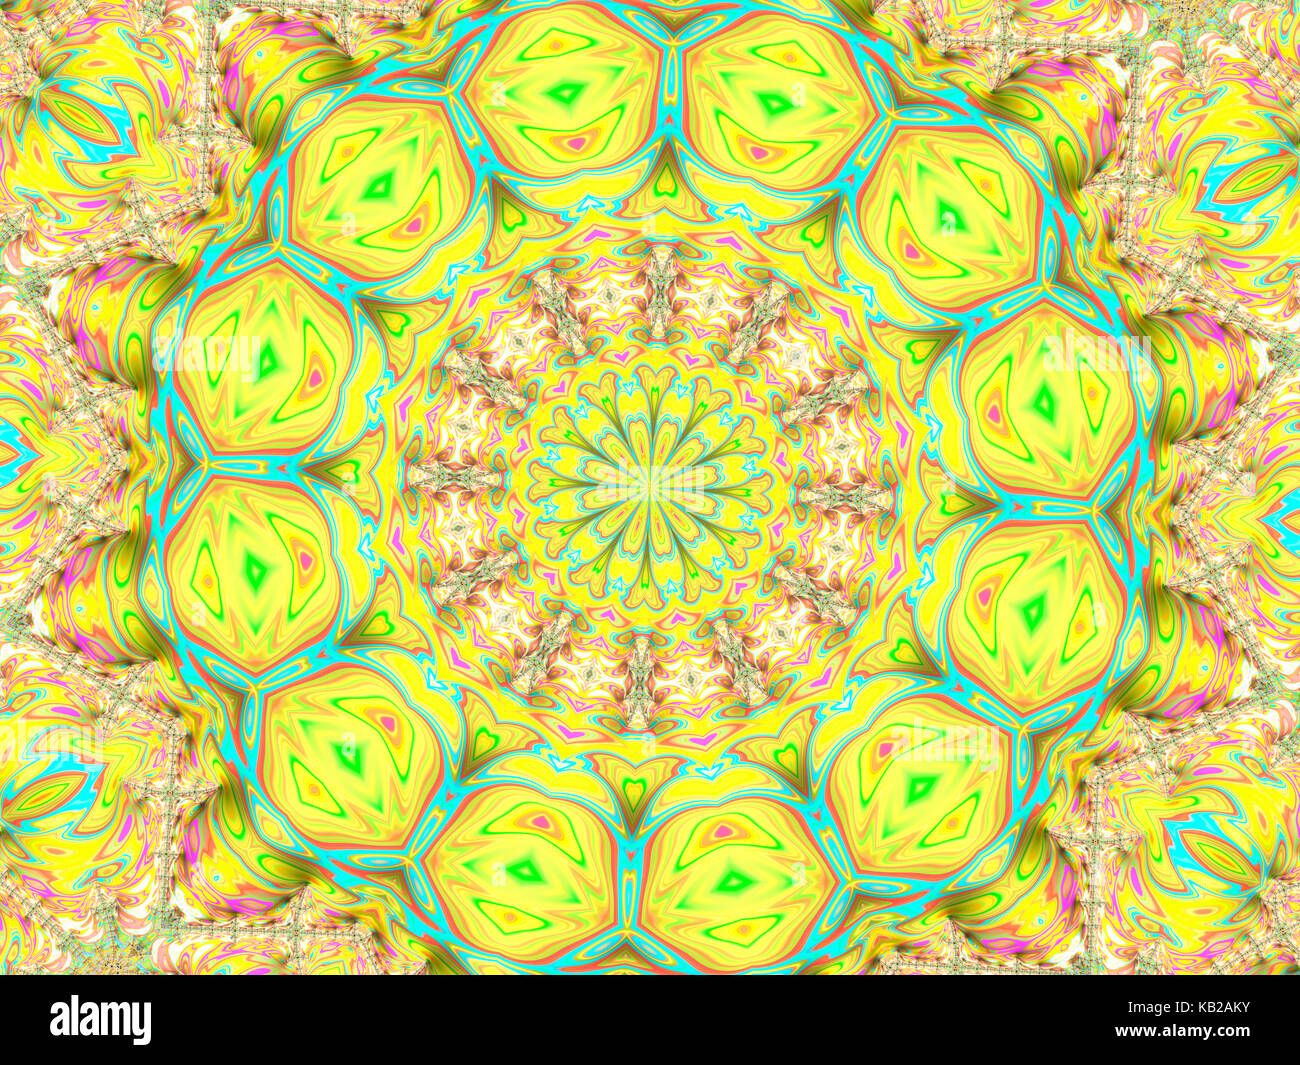 Strange shapes in Bright, Colorful Kaleidoscope l Pattern Stock ...